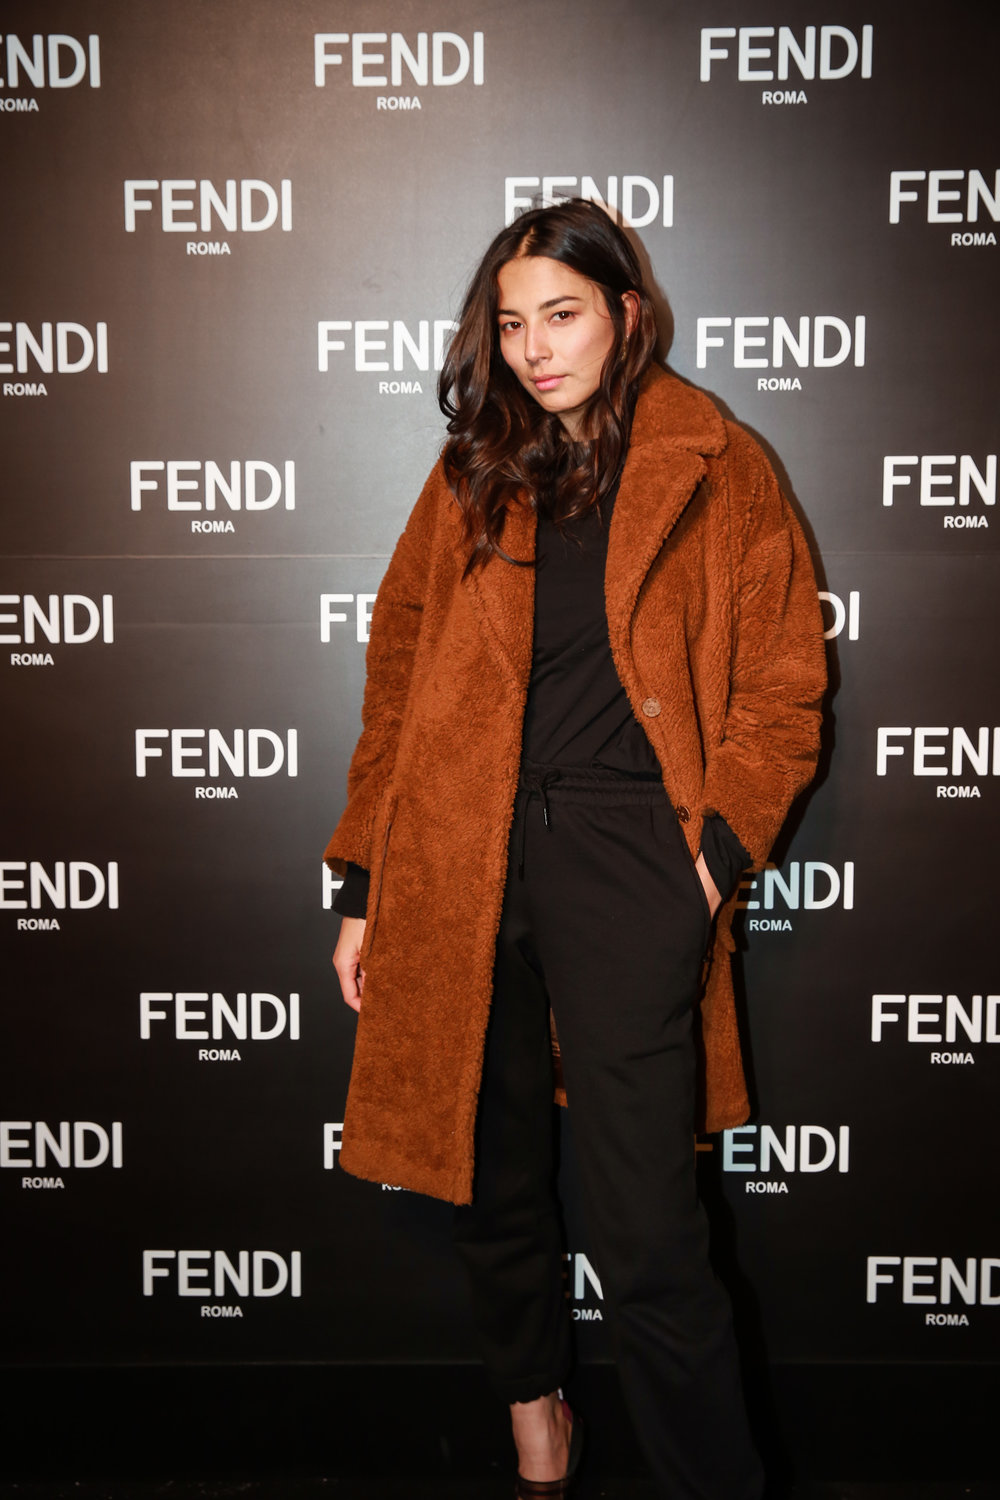 Jess Gomes  Fendi Collins Street Launch 30.8.18-34217.jpg